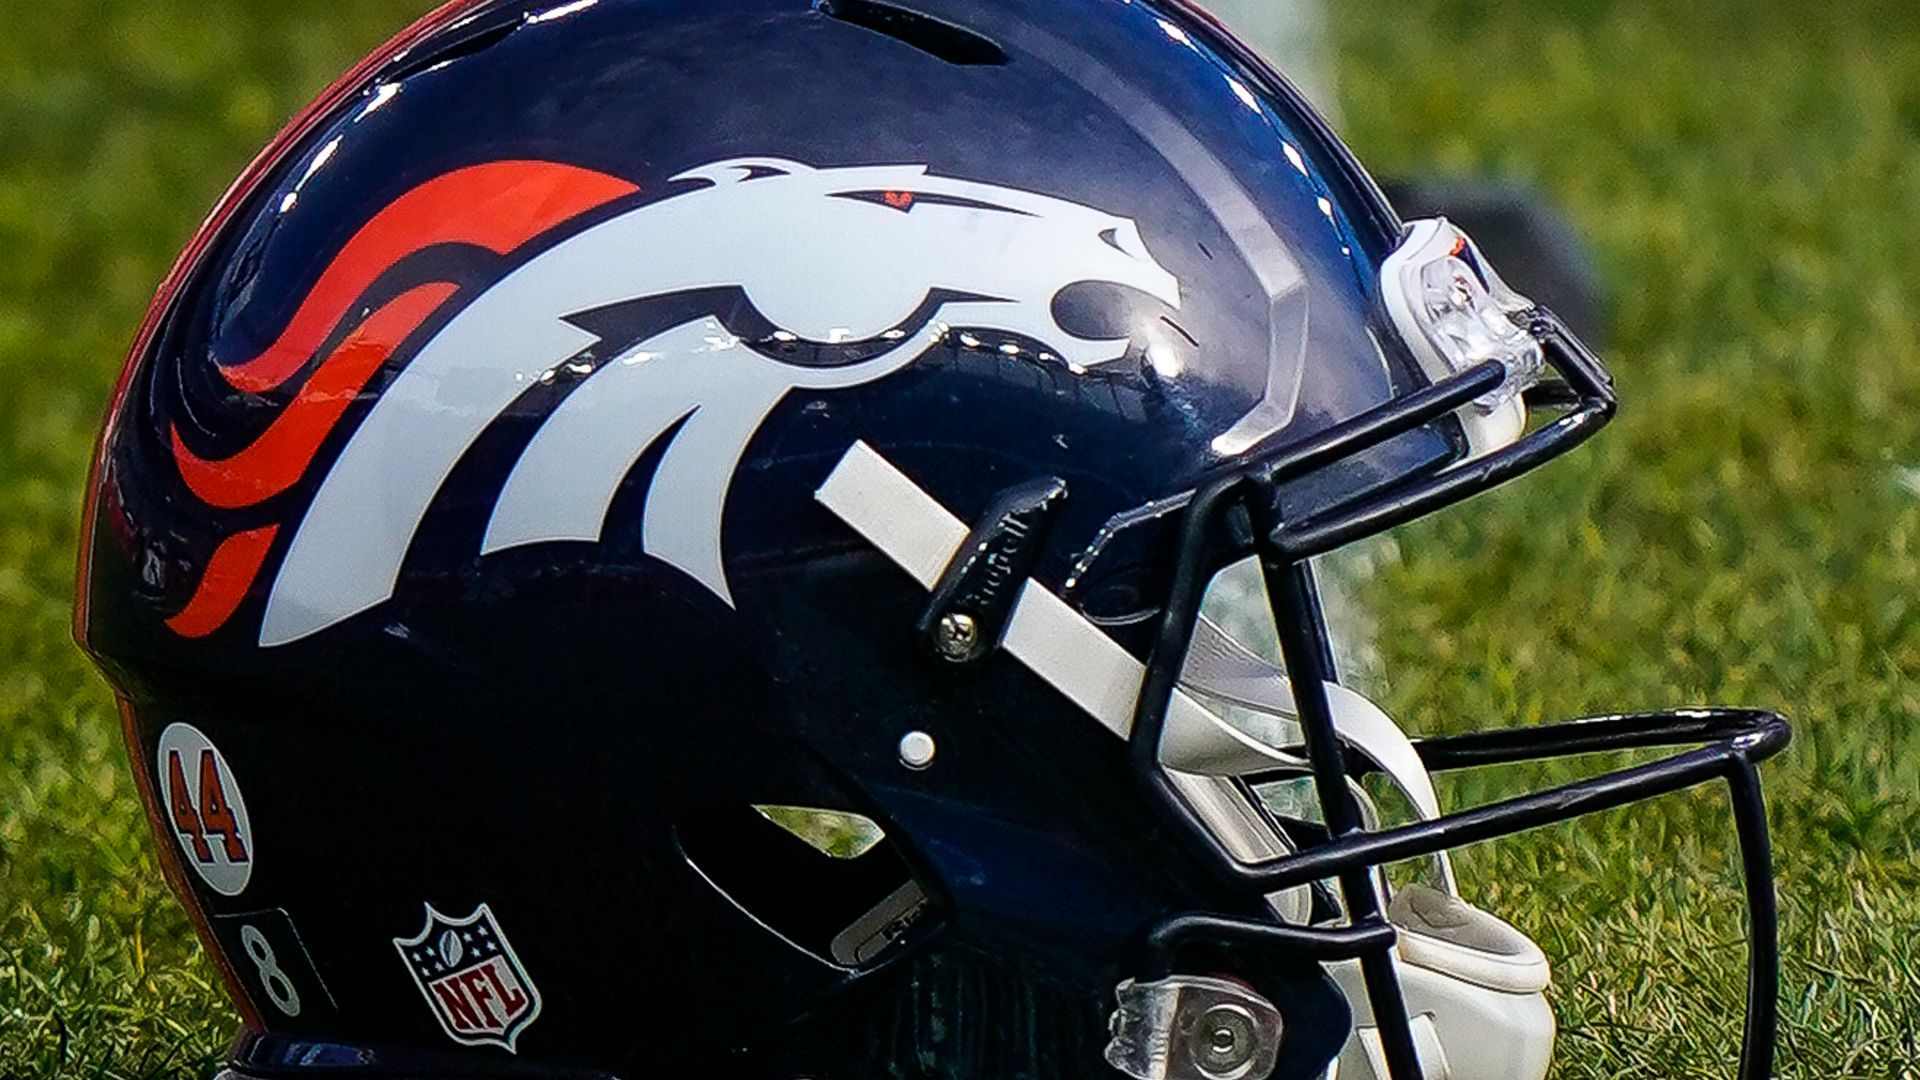 Paton takes over from Elway as Broncos GM